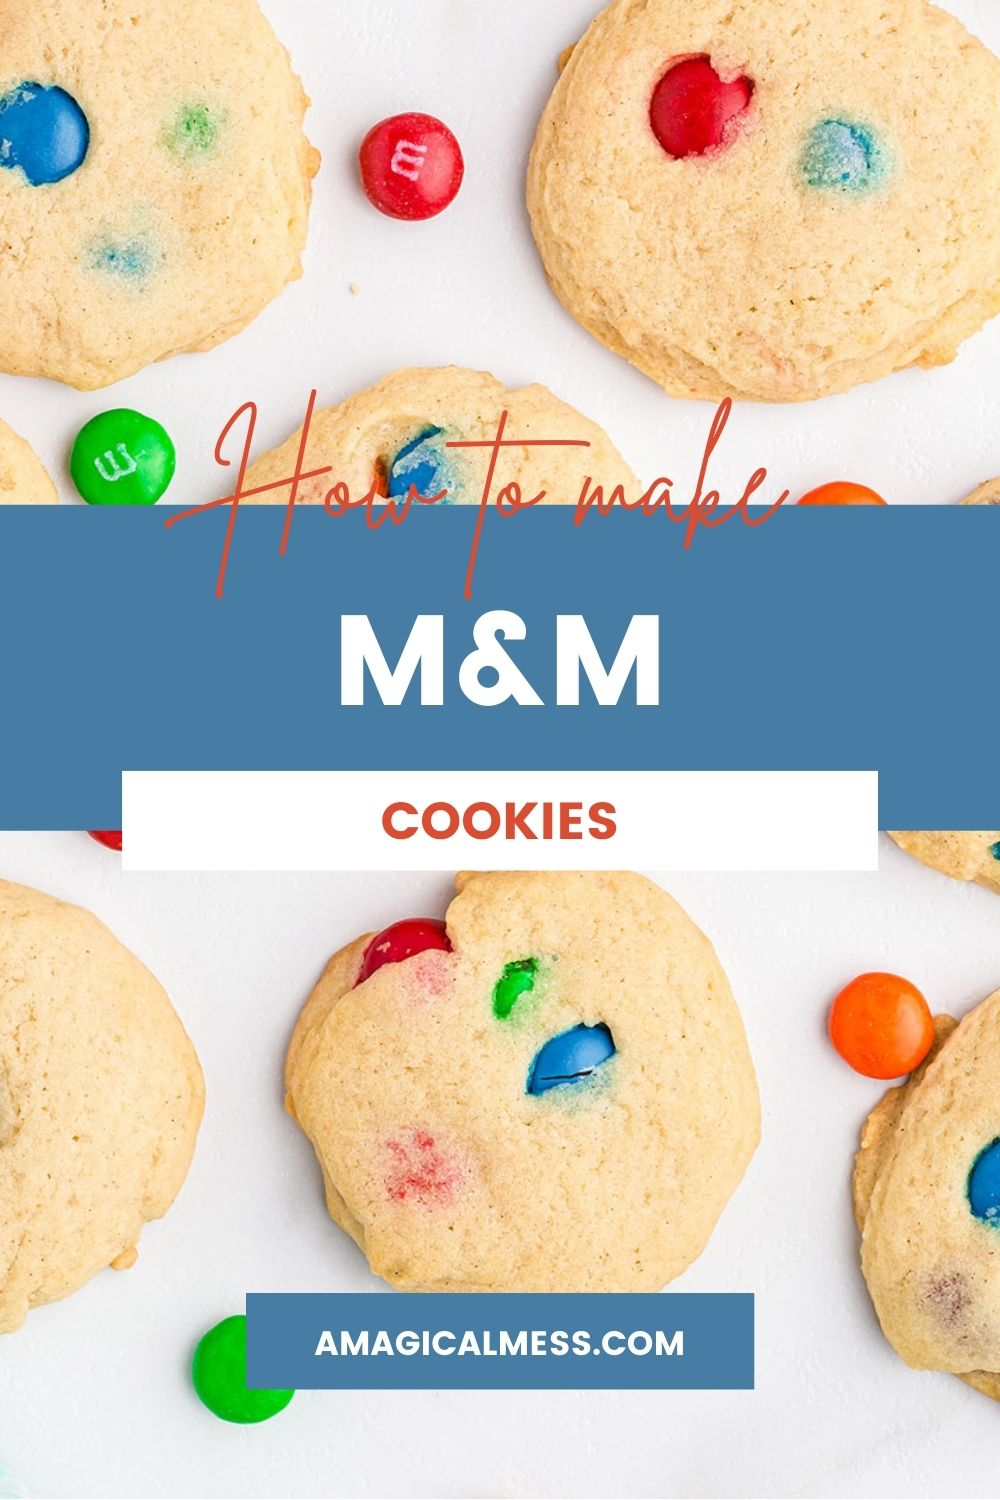 Cookies with M&M candies in them.